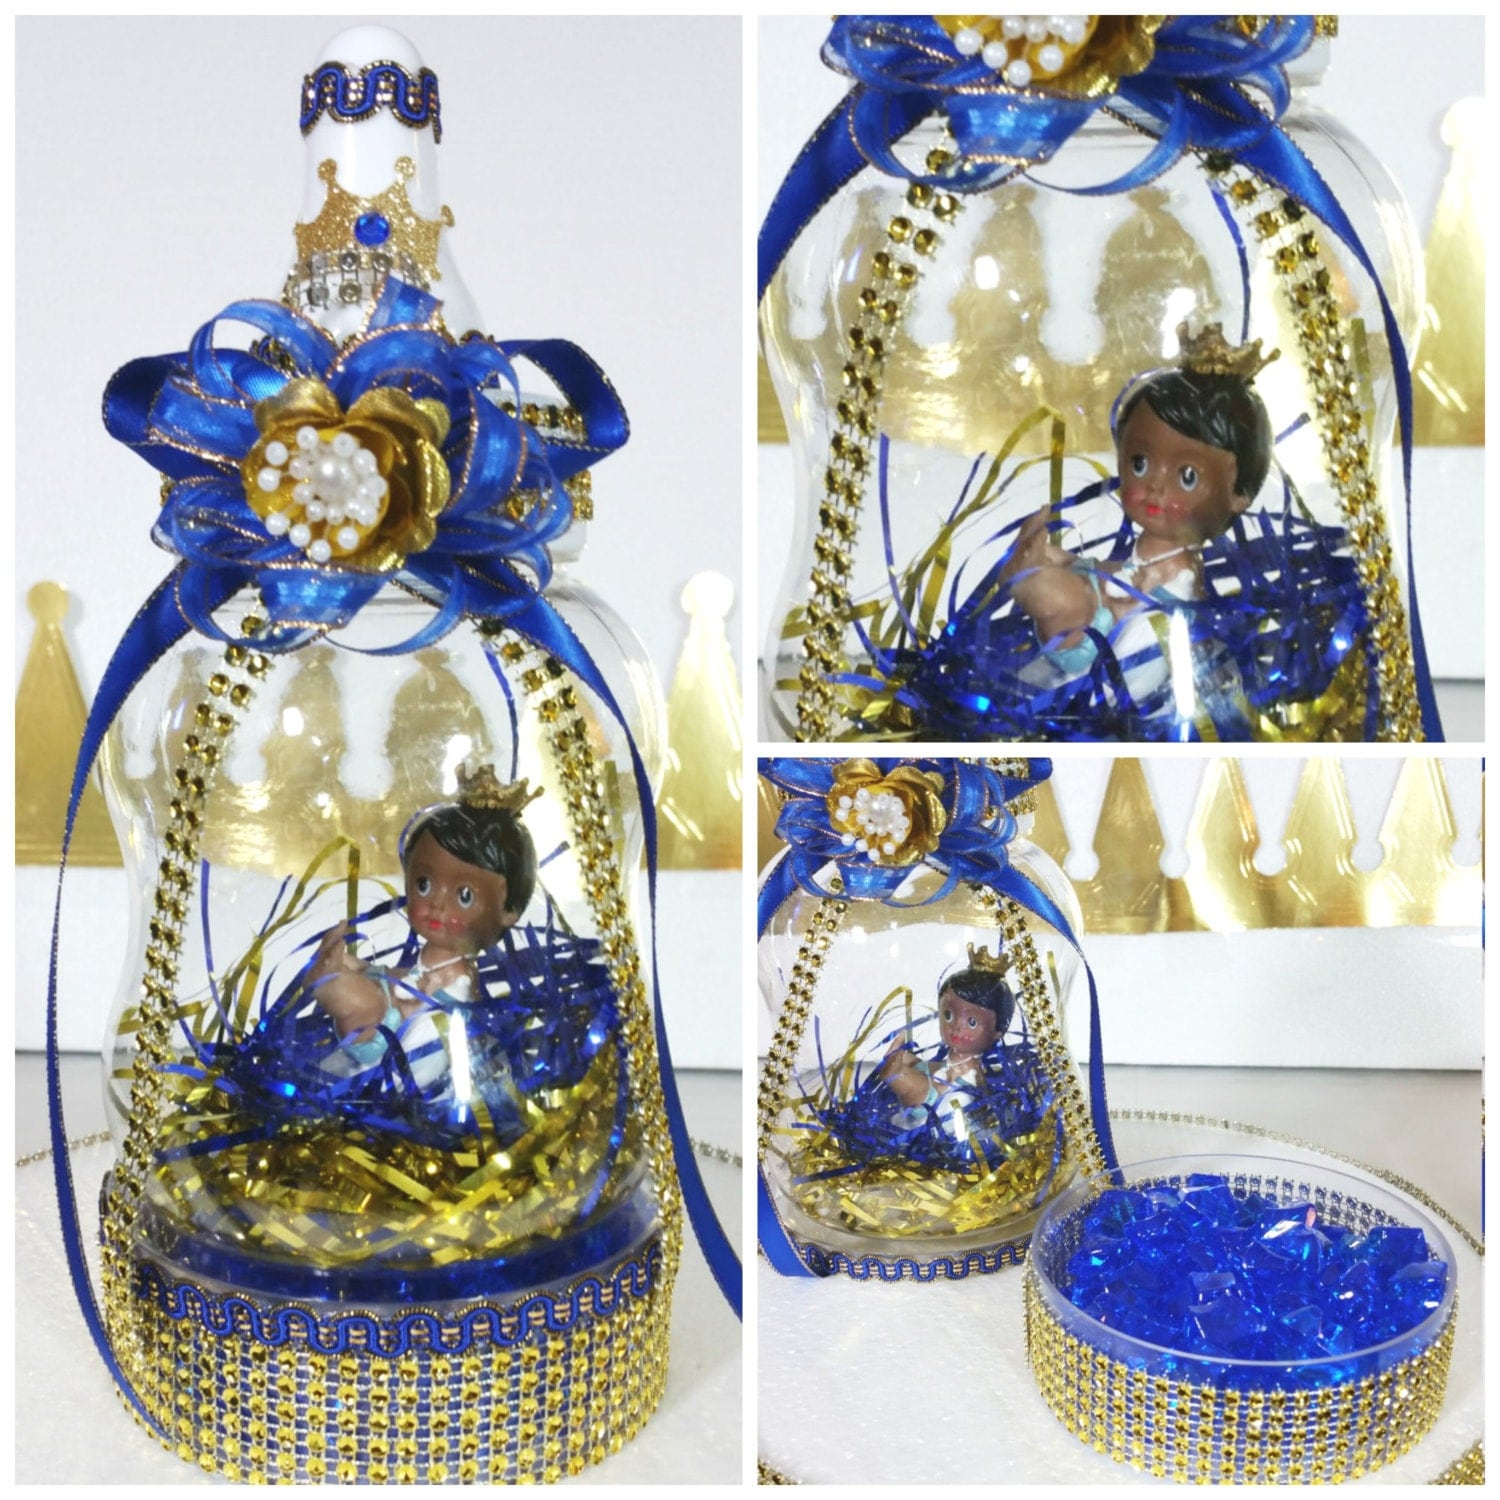 Royal Prince Baby Shower Centerpiece & Candy Tray For Baby